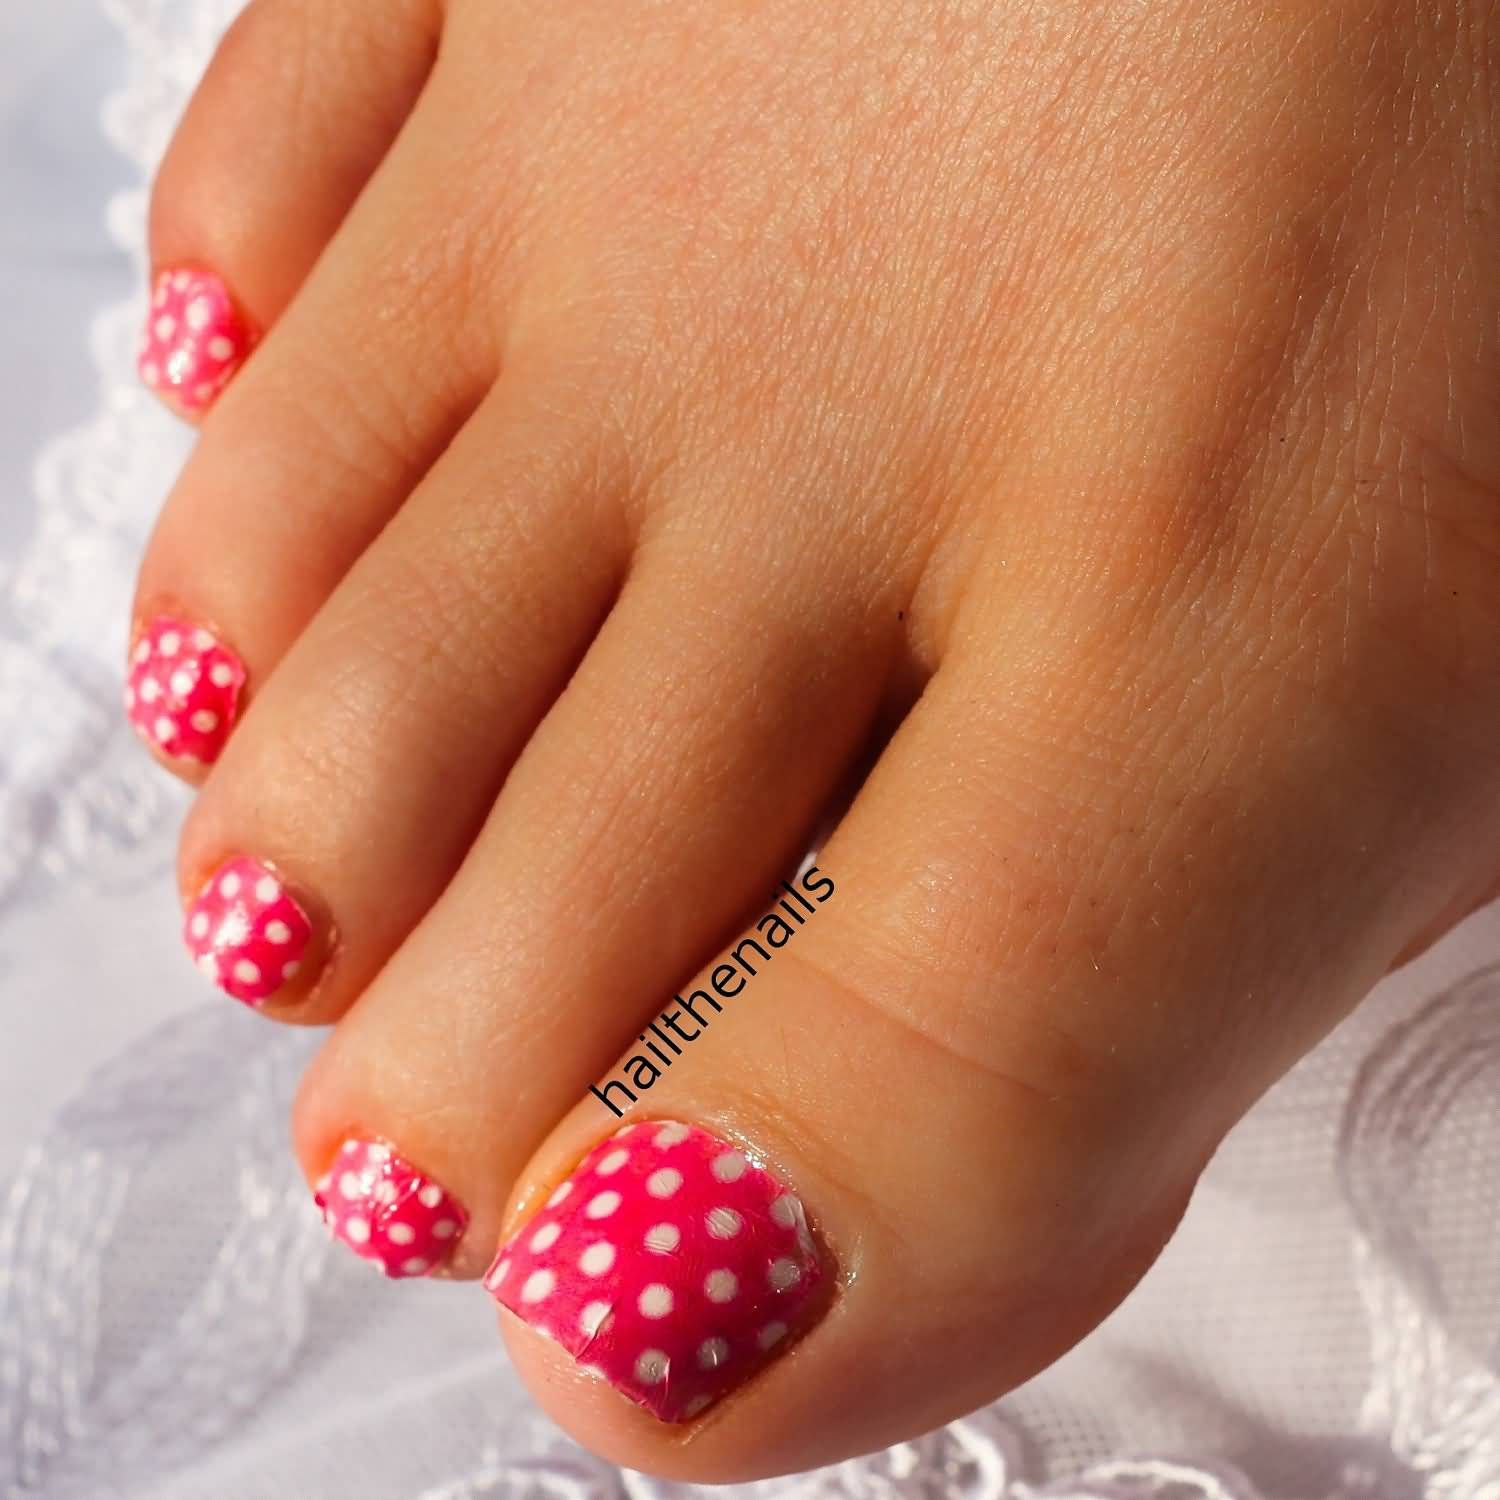 Nail art design for toes dots best nails 2018 40 pink toe nail art design ideas prinsesfo Images